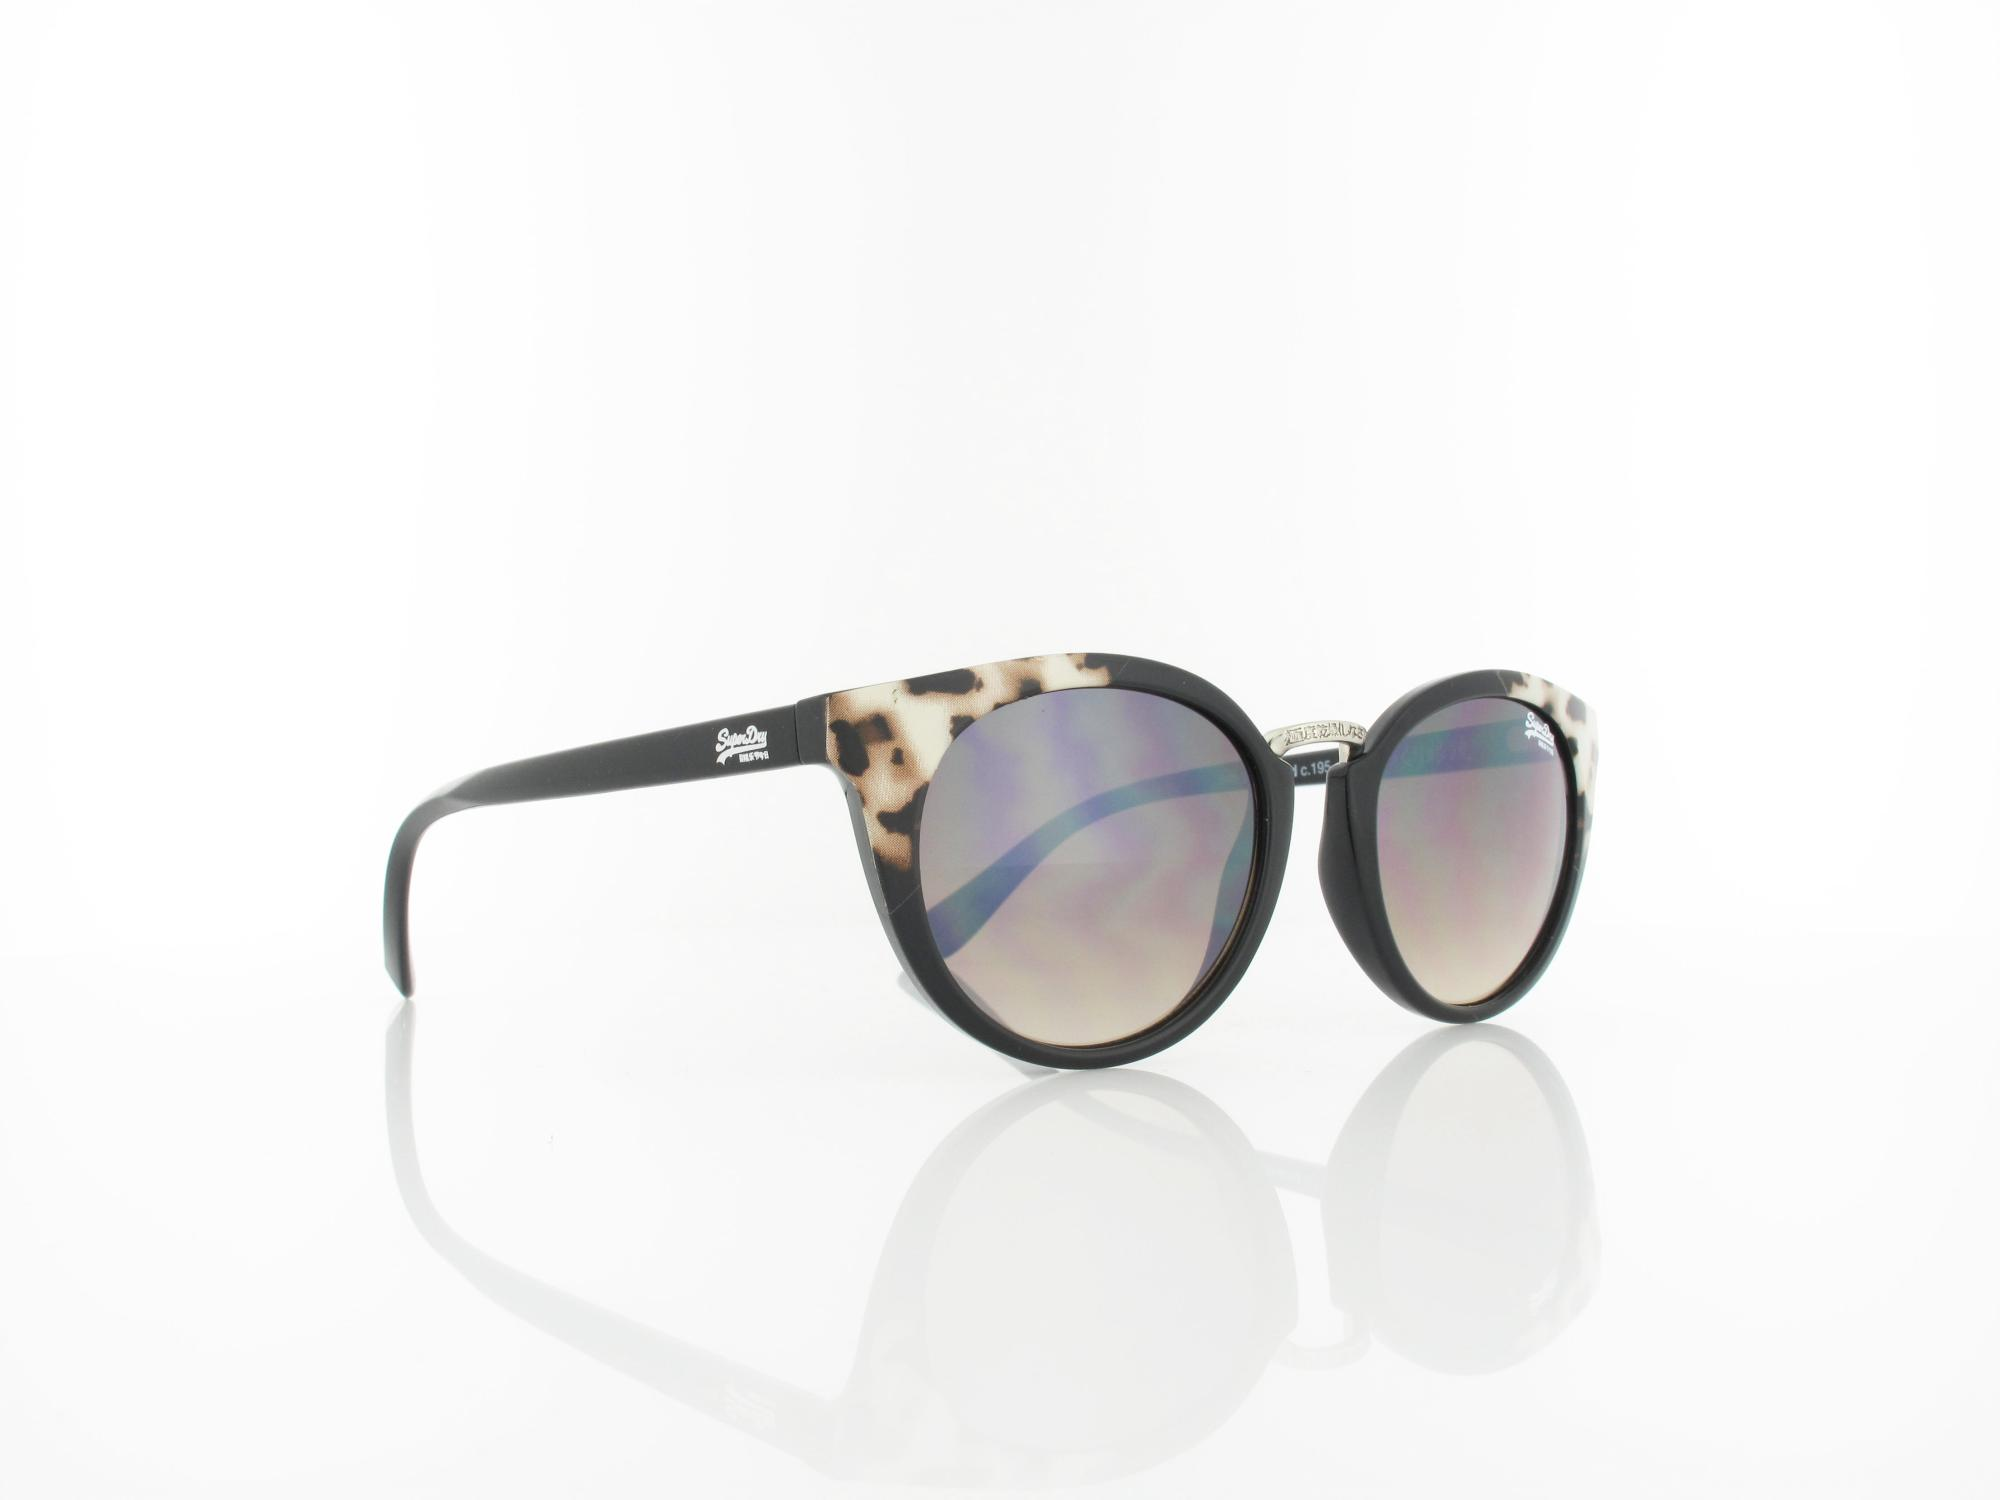 Superdry | Girlfriend 195 50 | gloss black leopard / brown fade with silver flash mirror